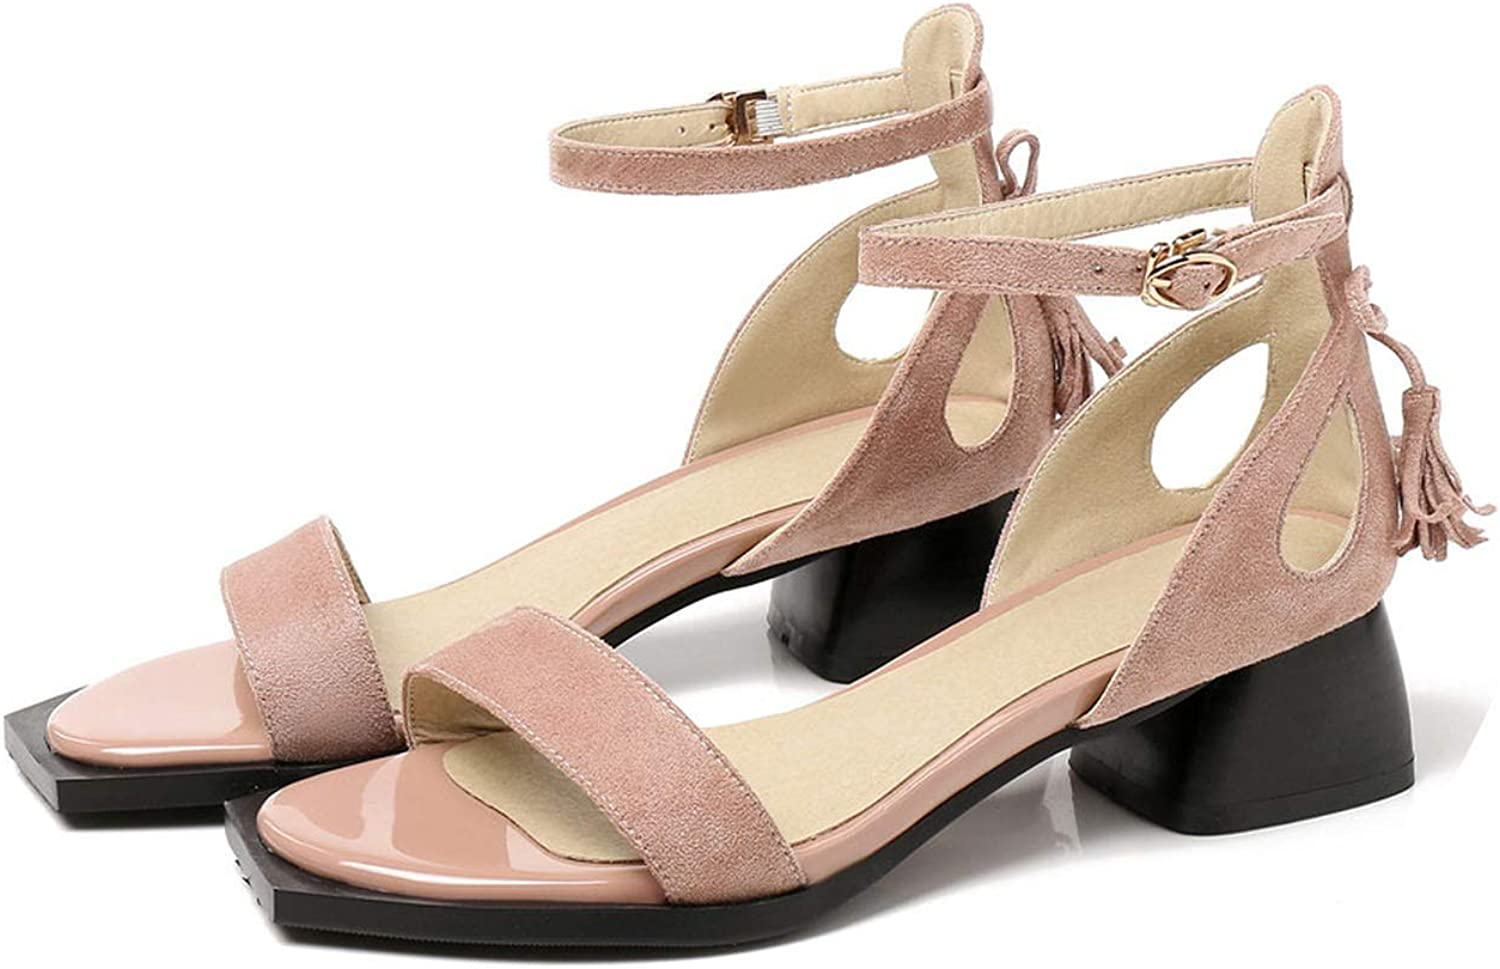 Women Sandals Flock Summer shoes Big Size 33-43 Solid Casual shoes high Heel Ladies shoes